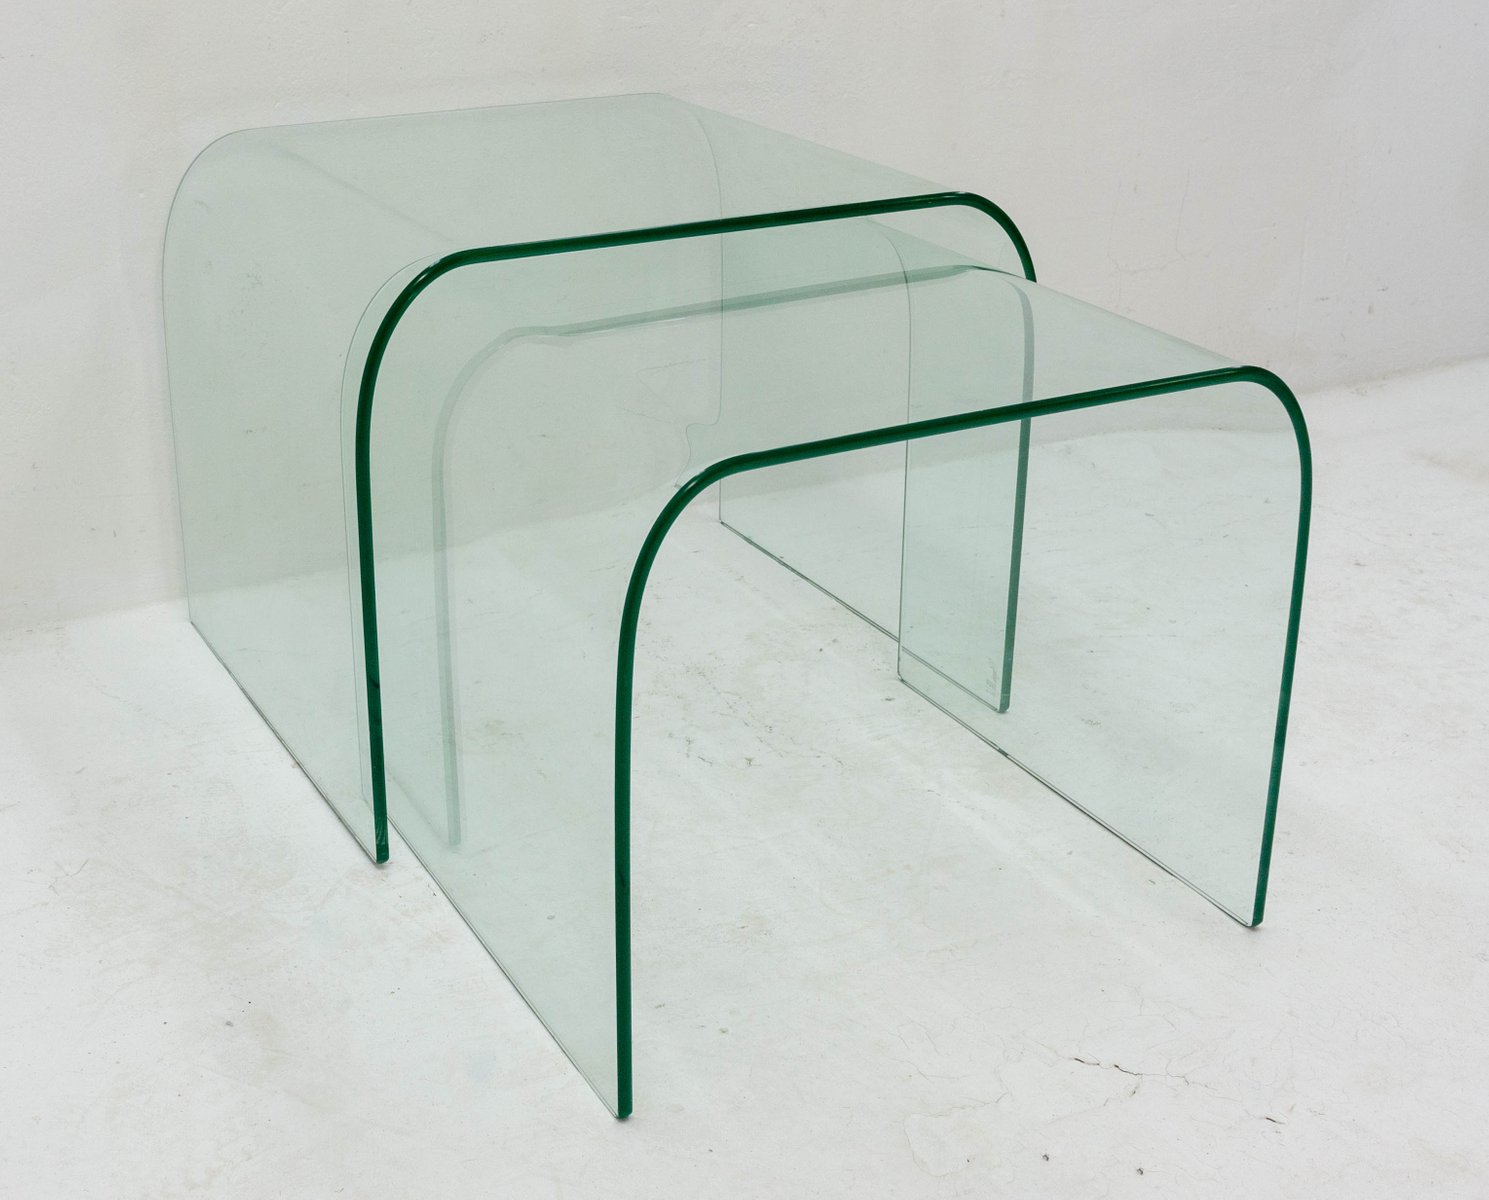 Glass nesting tables by angelo cortesi and sergio chiappa gatto for glass nesting tables by angelo cortesi and sergio chiappa gatto for fiam 1980s set of 2 watchthetrailerfo